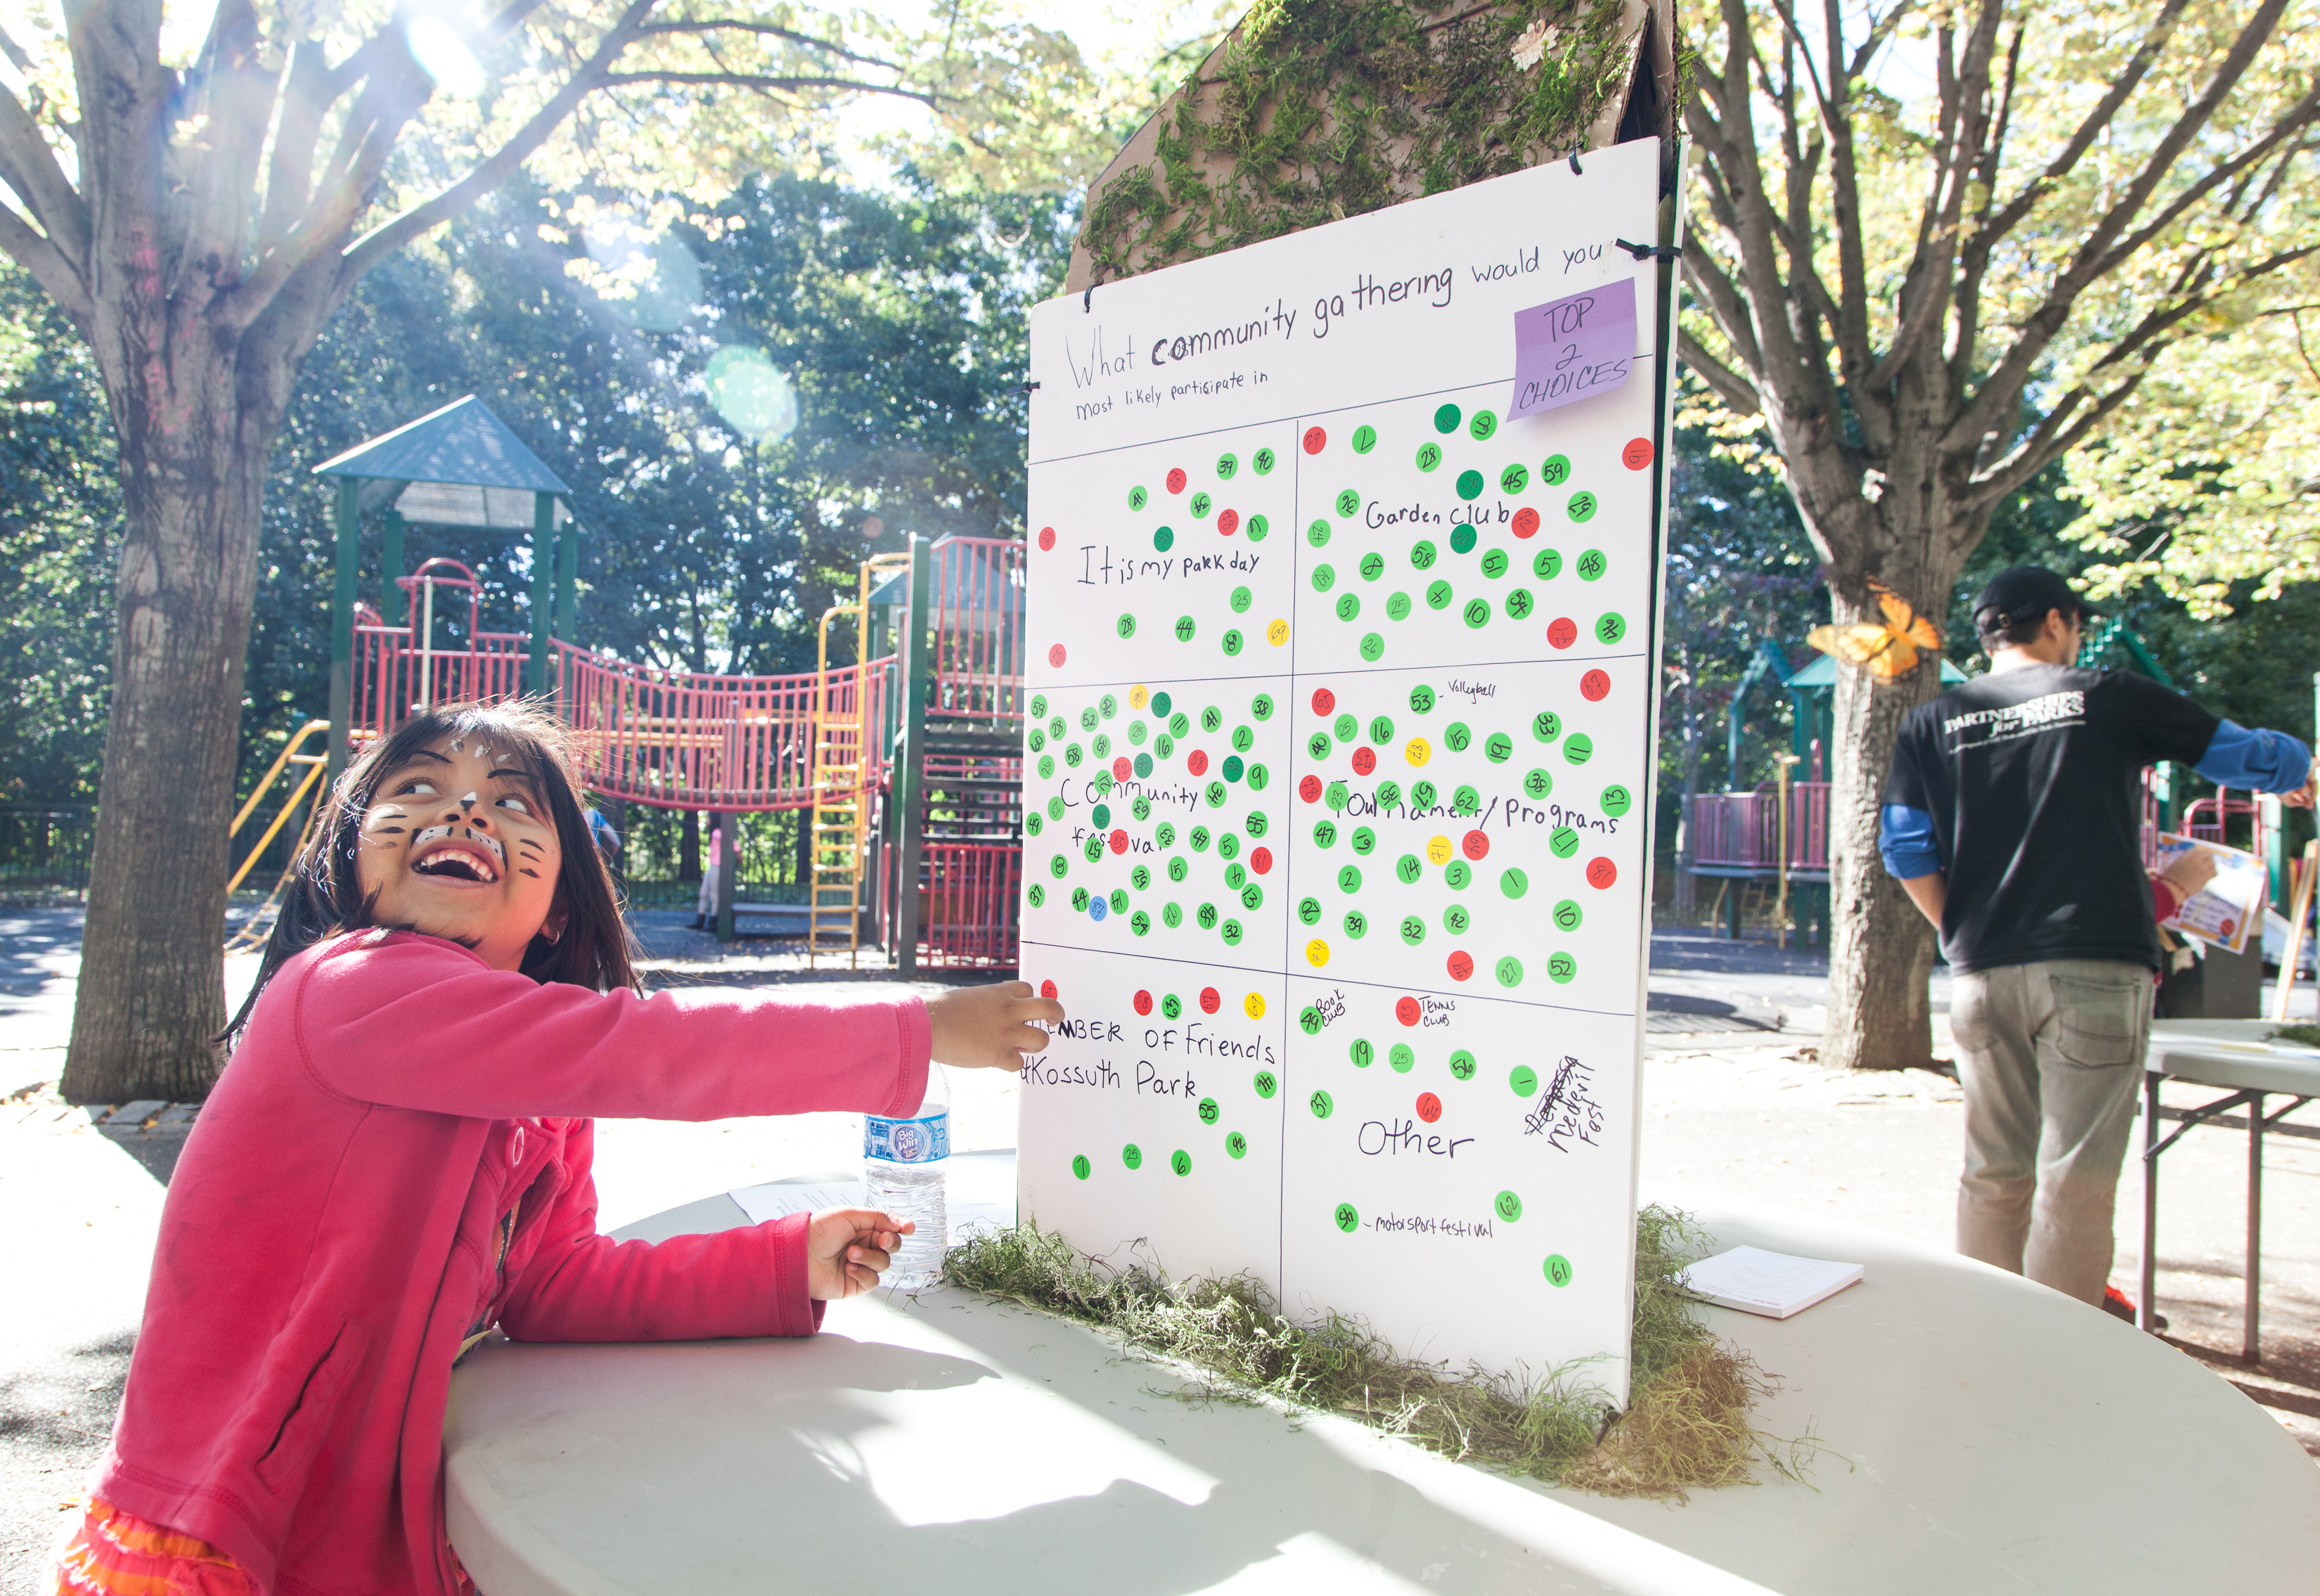 About Partnerships for Parks - City Parks Foundation